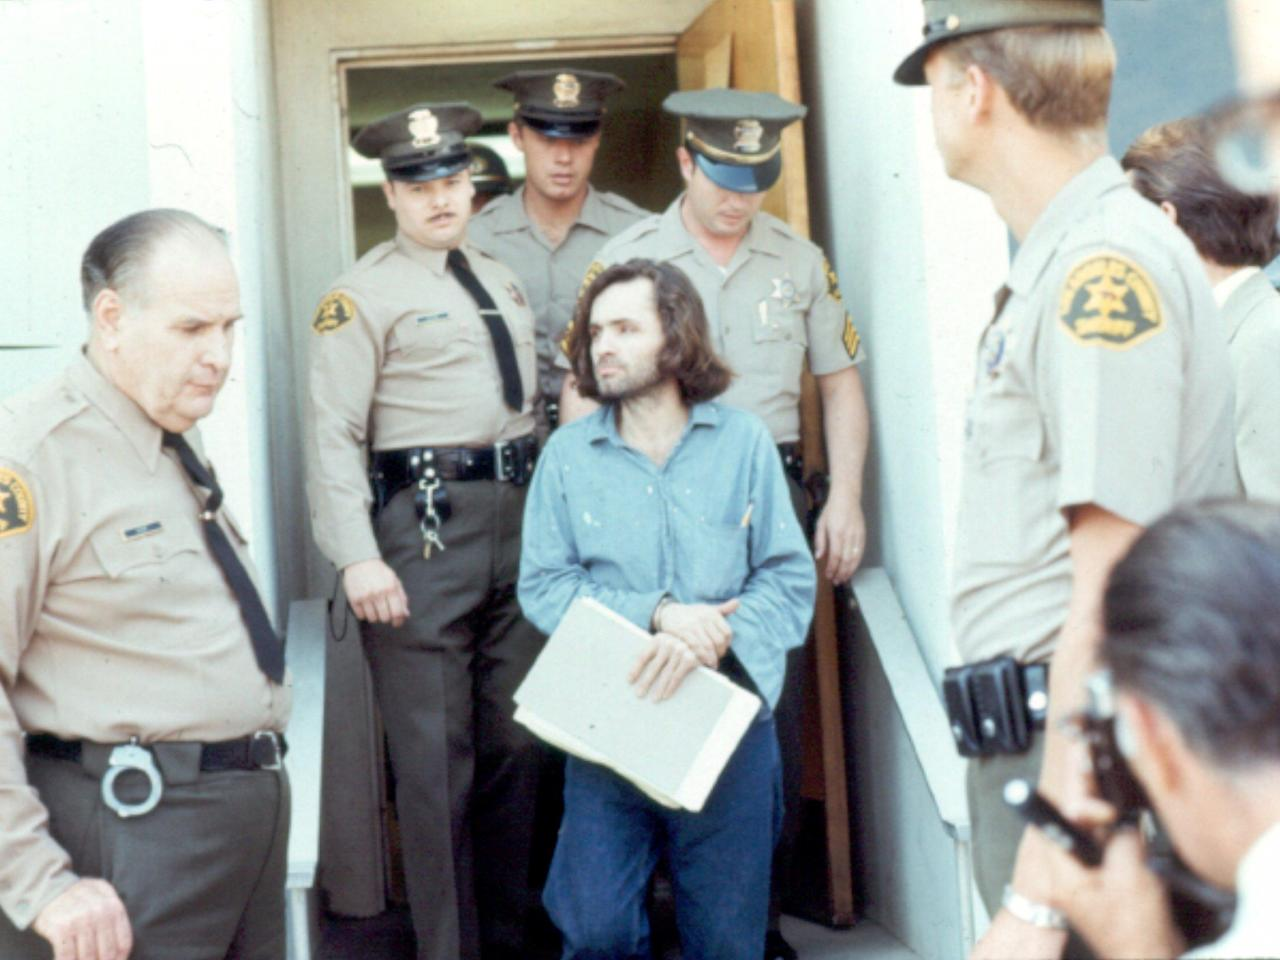 LA police almost let Charles Manson get away with multiple murders. Here's how.